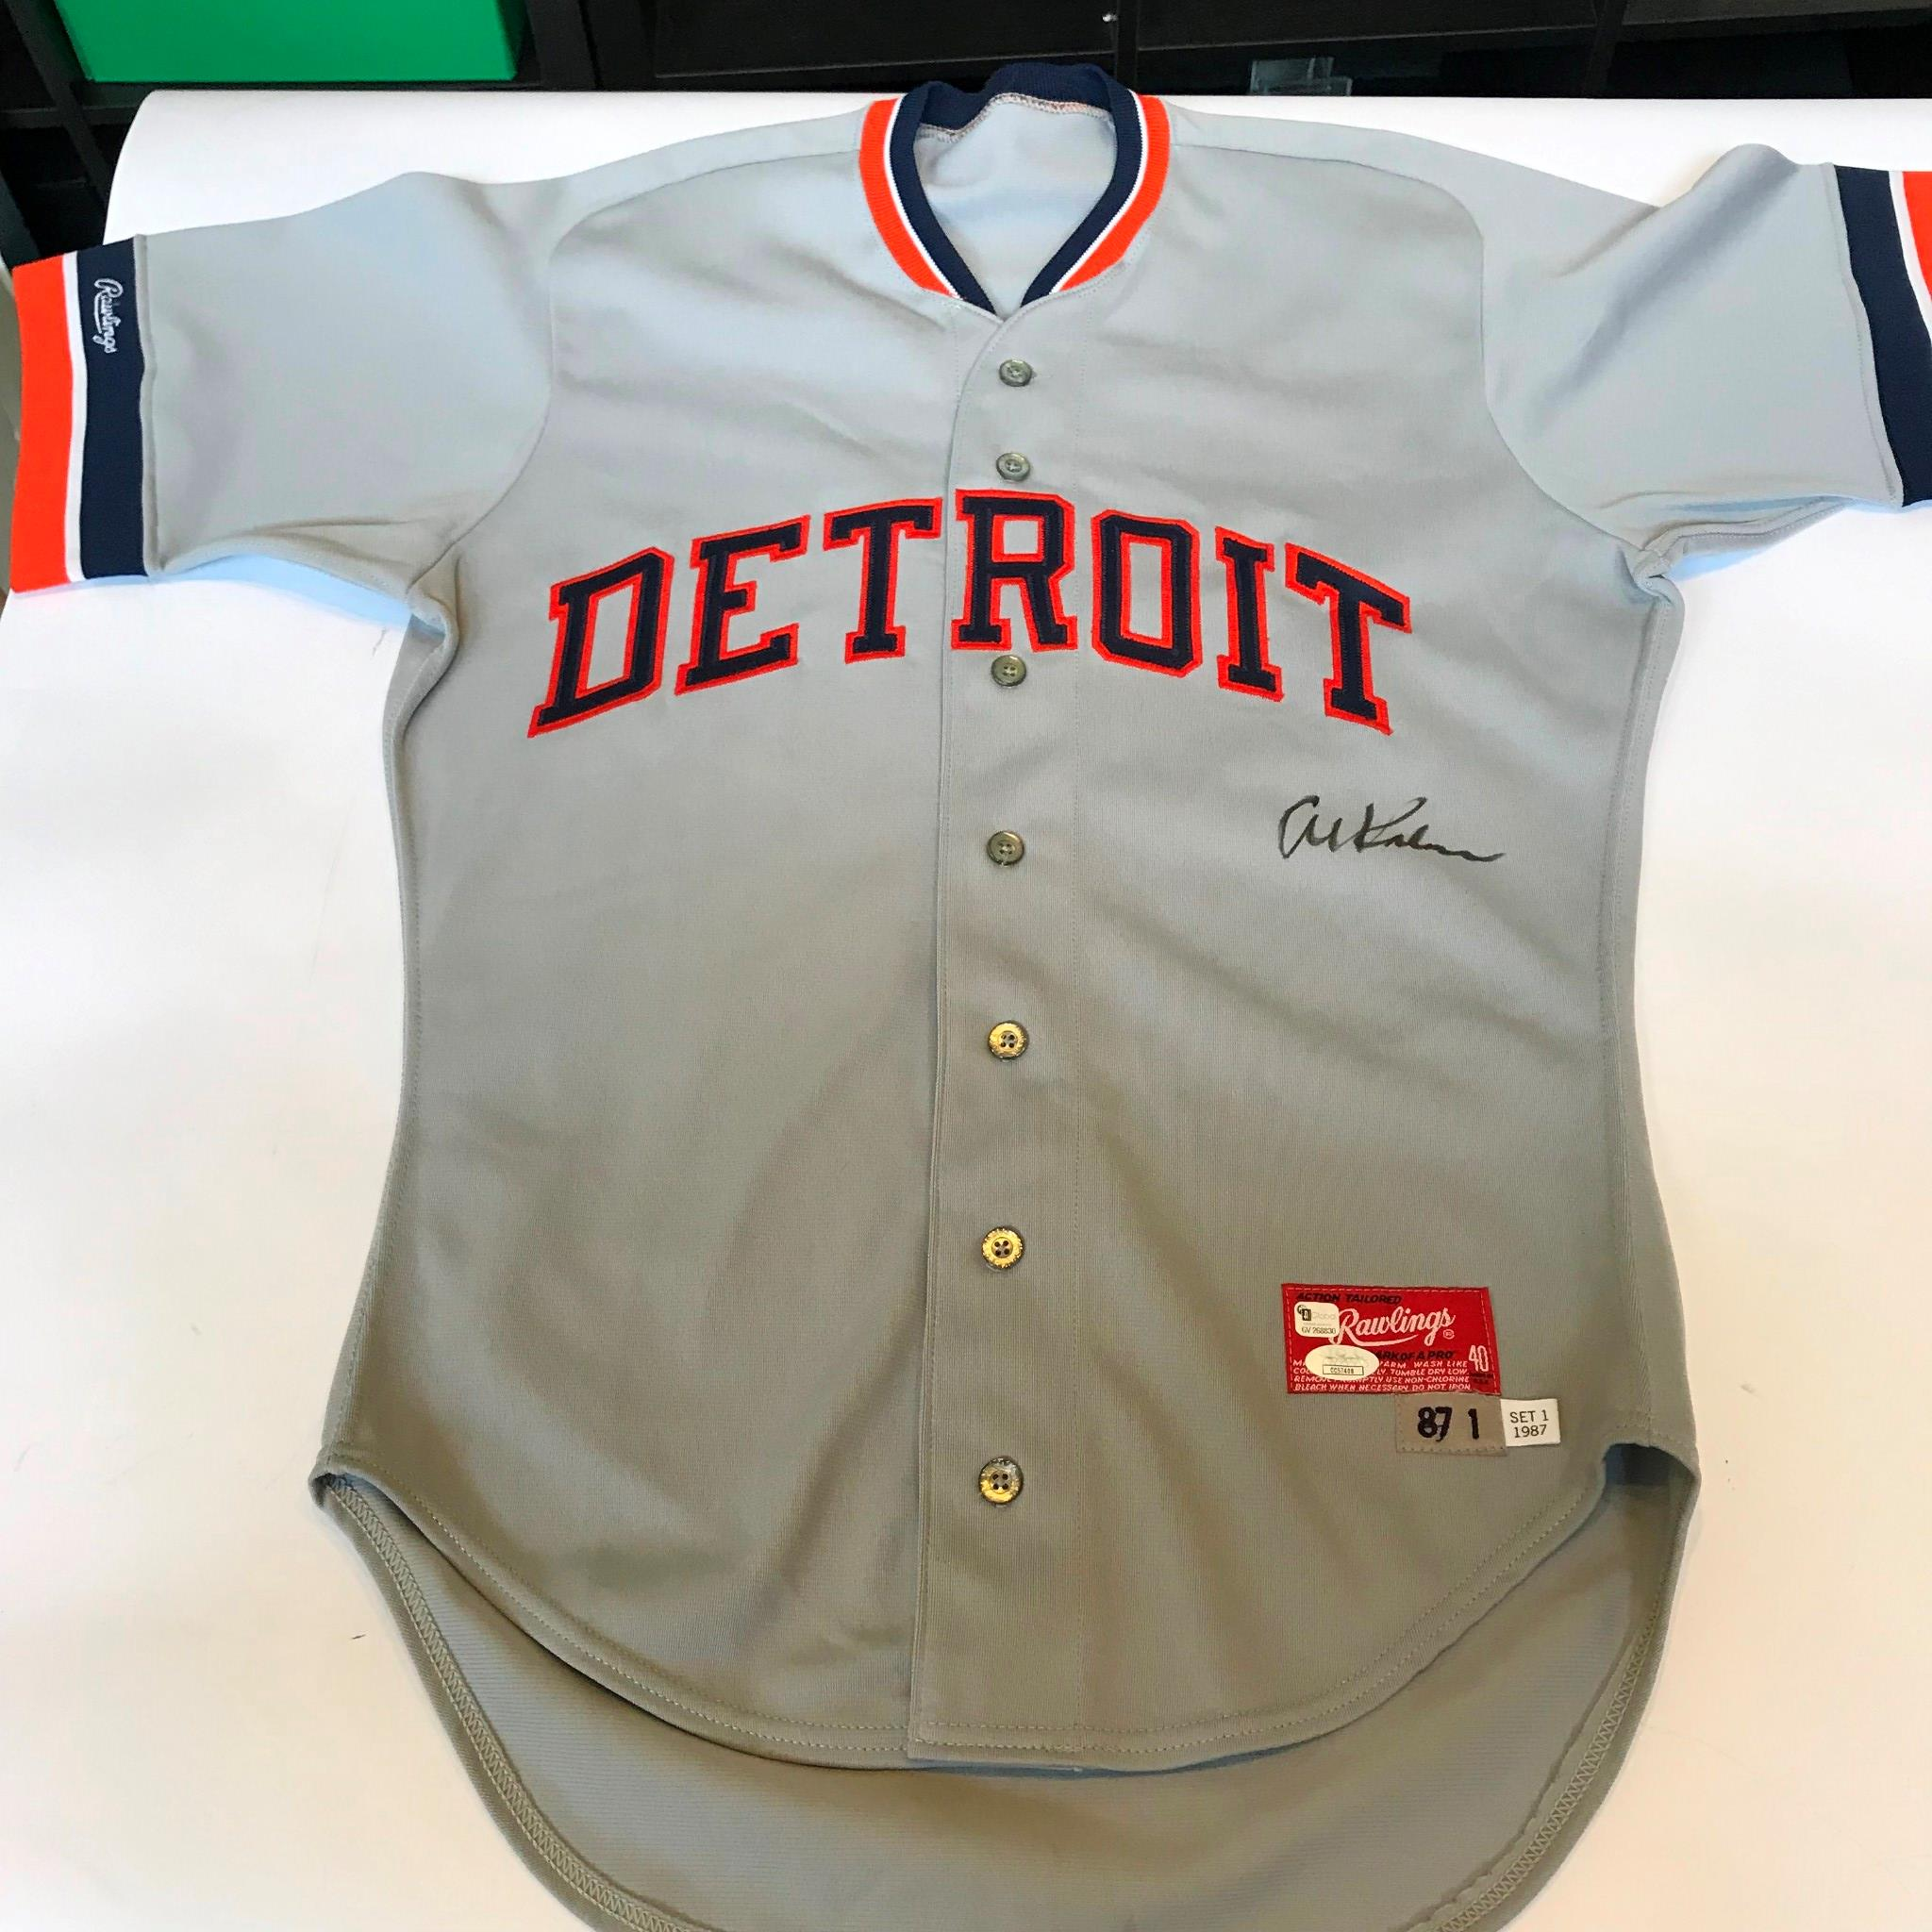 buy online aaa8d 69a52 Details about Rare Al Kaline Signed 1987 Game Issued Detroit Tigers Jersey  With JSA COA